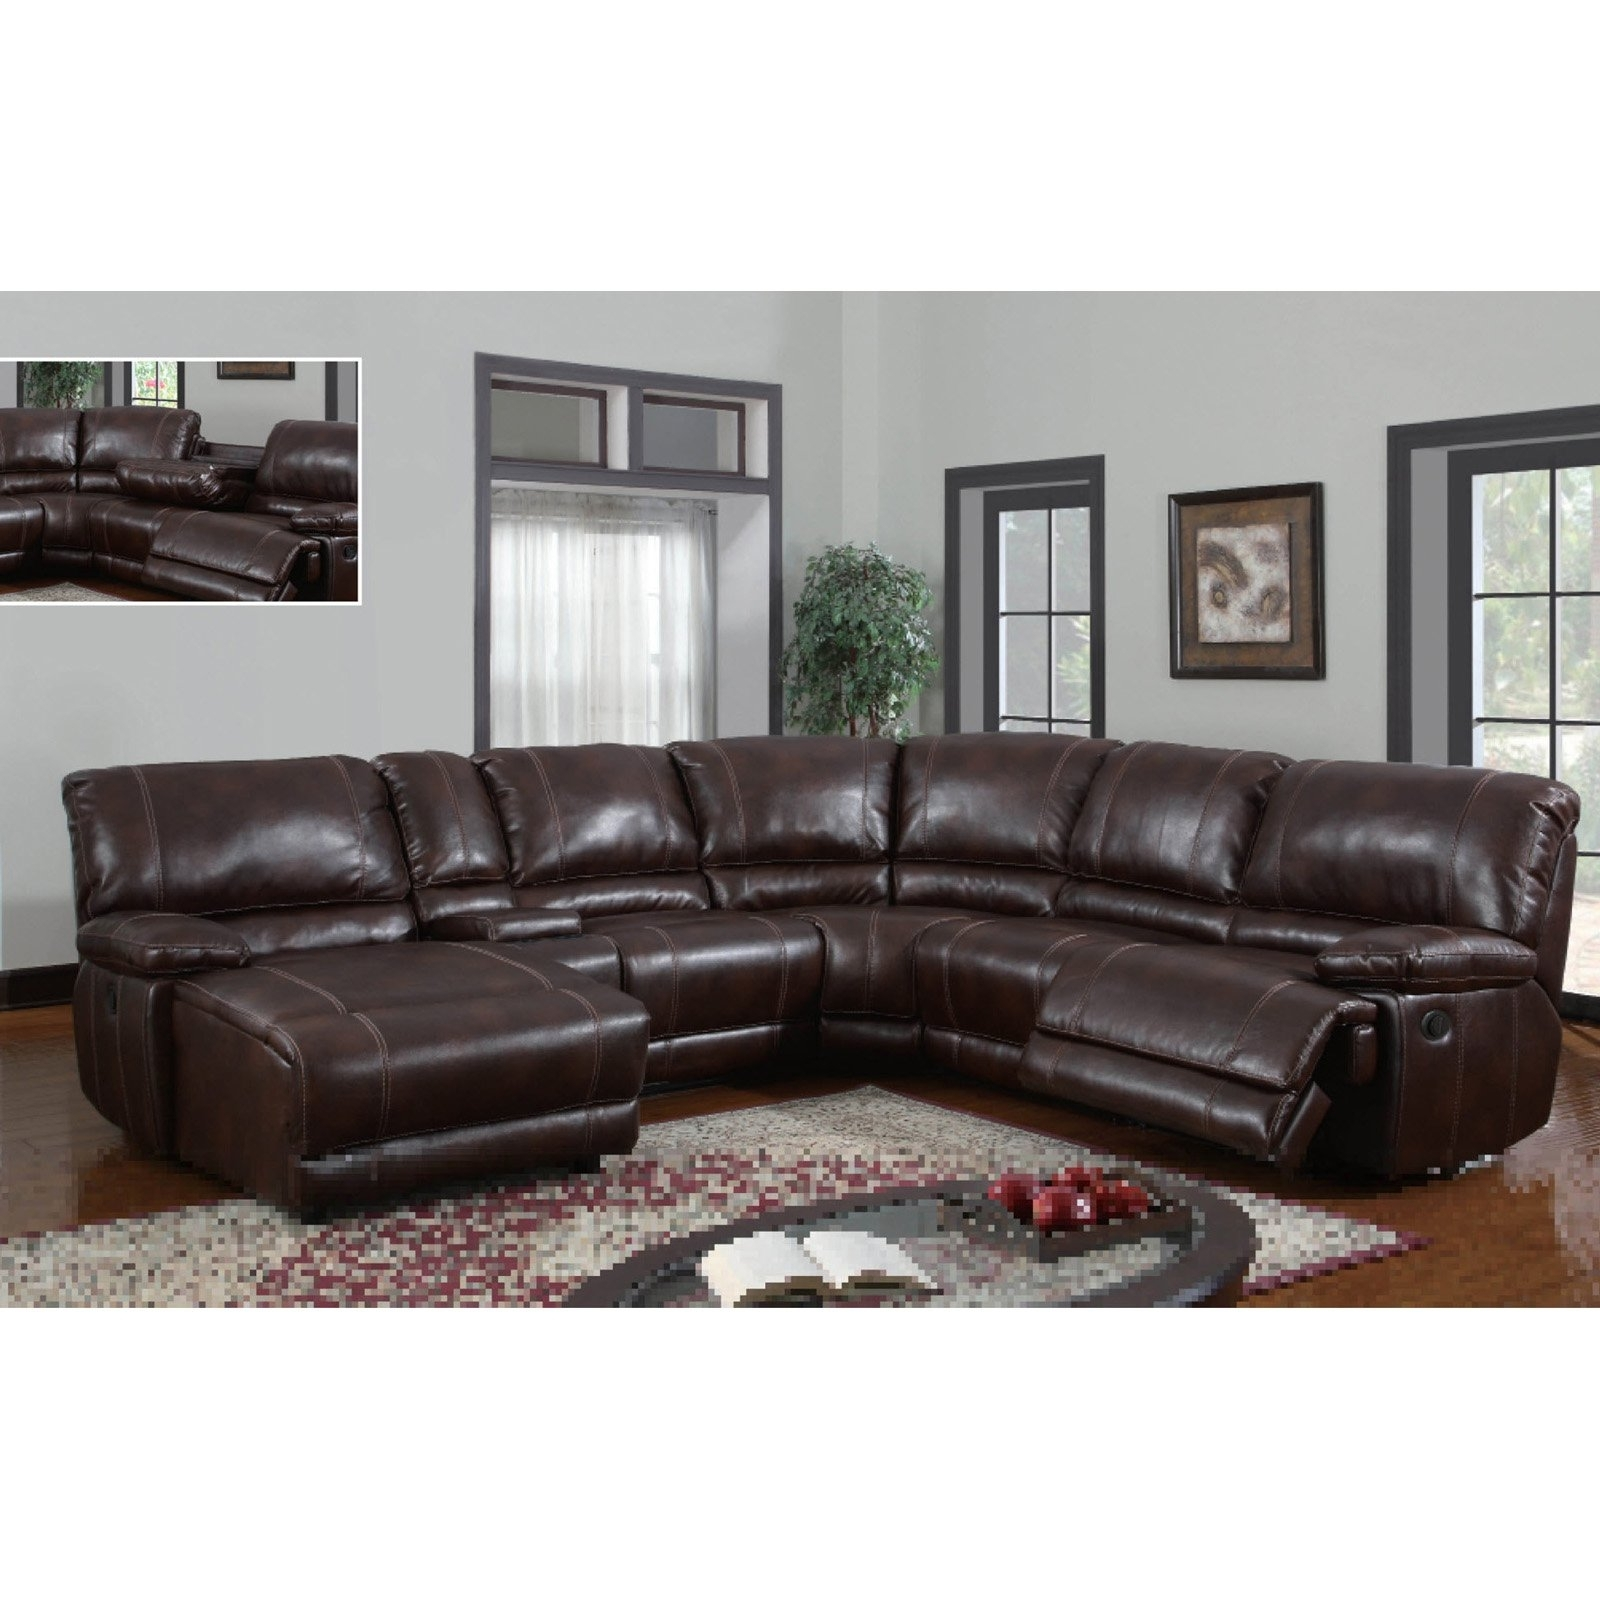 Latest Sectional Sofas With Power Recliners With Leather Sectional Sofa With Power Recliner 11 With Leather (View 12 of 15)